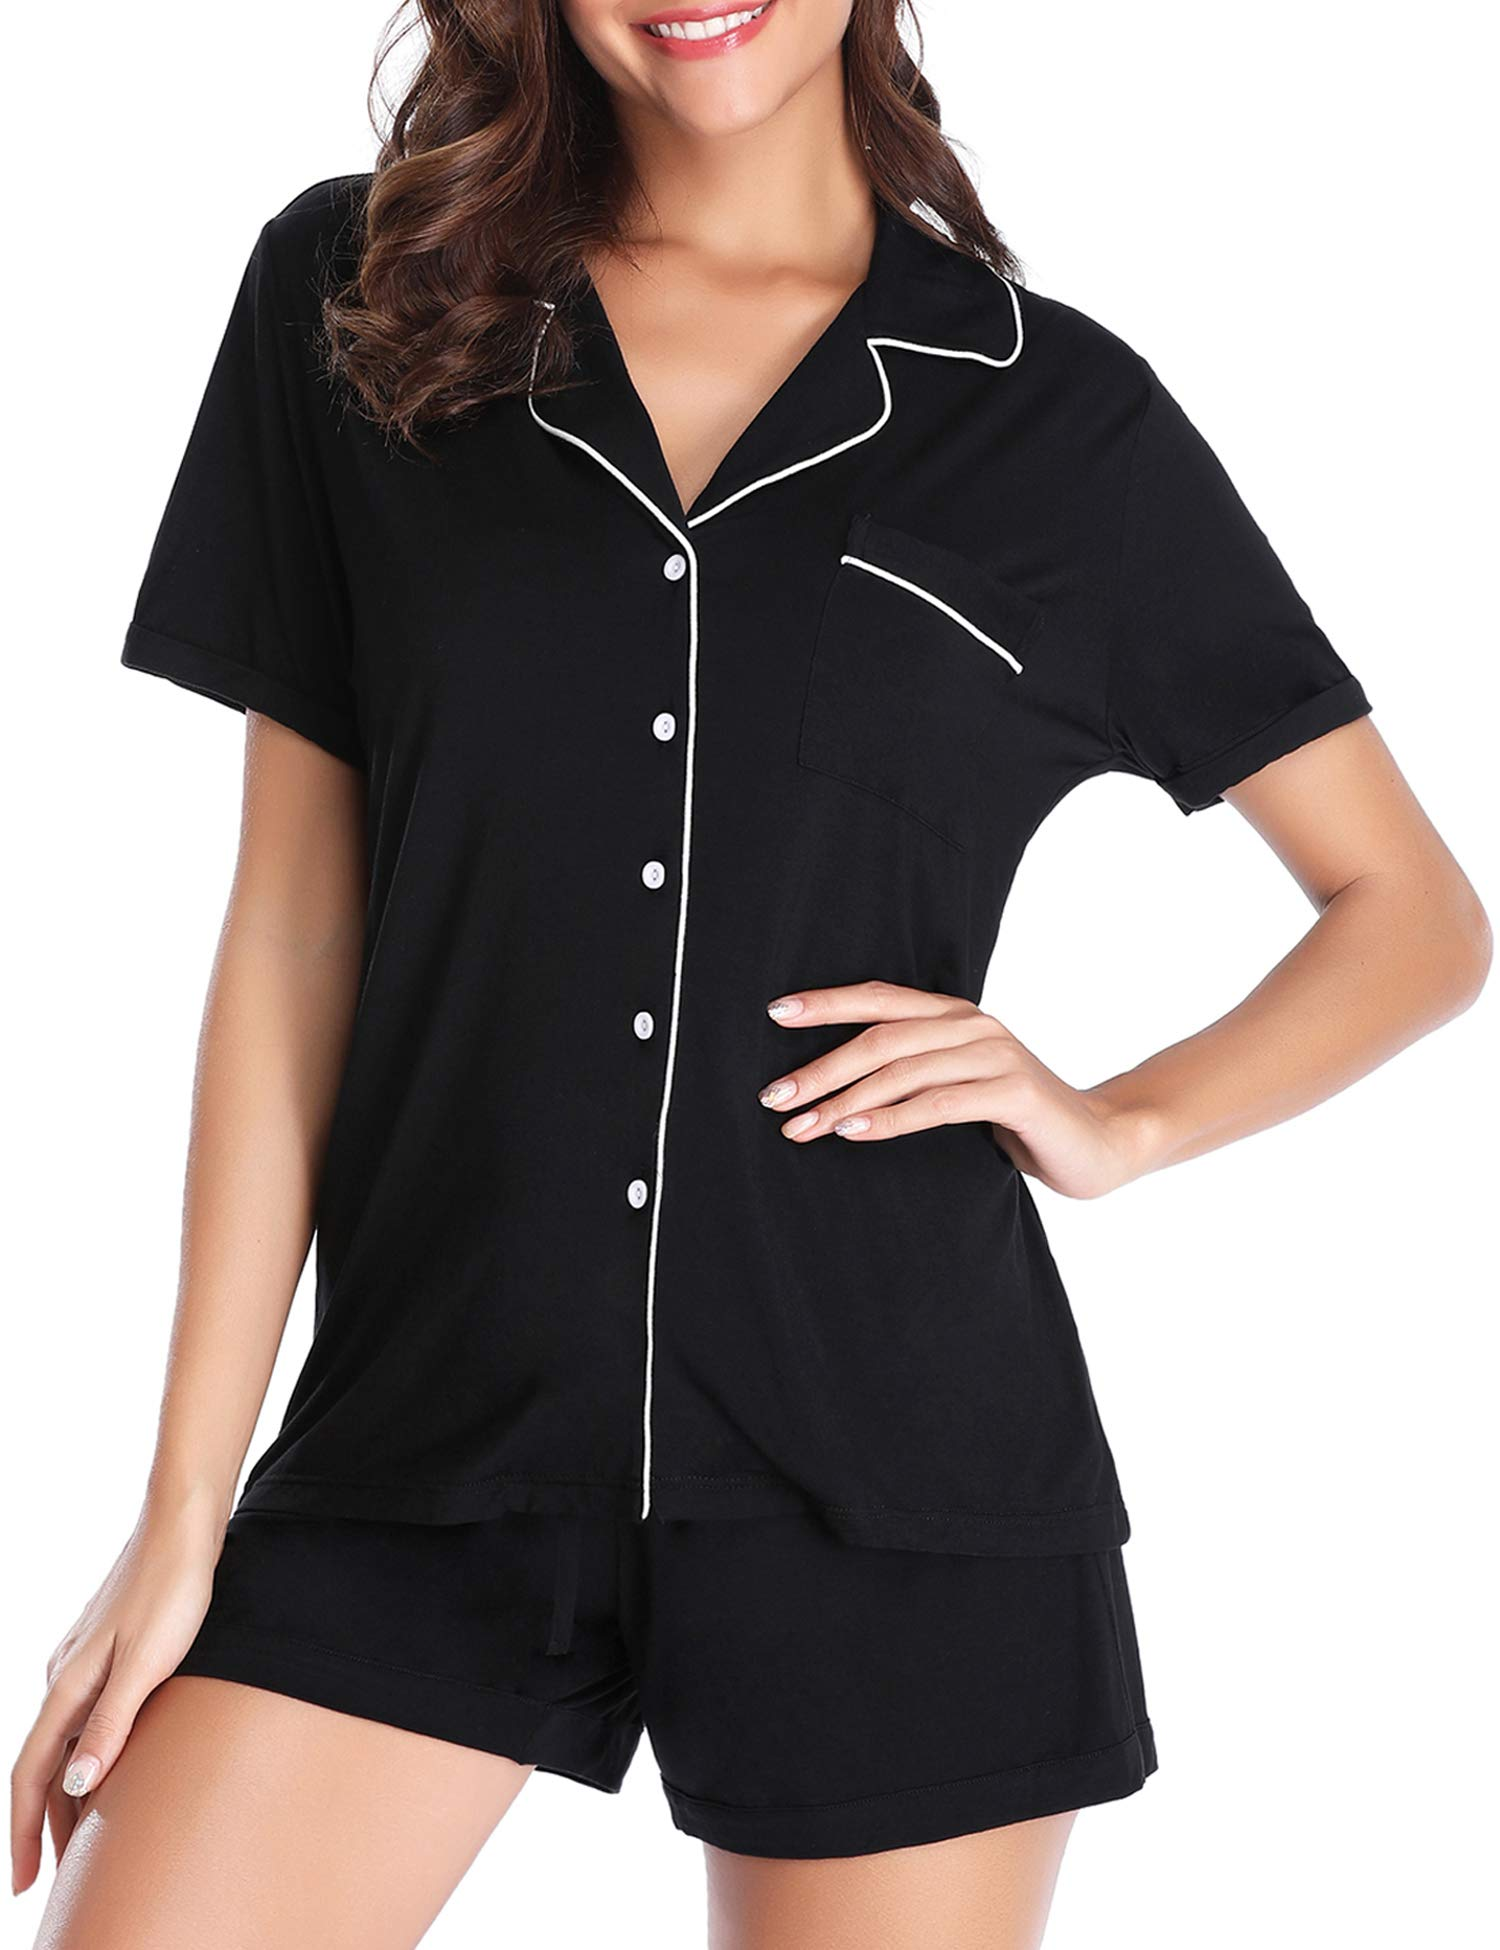 Lusofie Pajama Set for Women Short Sleeve Soft Knit Loungewear with PJ Shorts (Black,M)